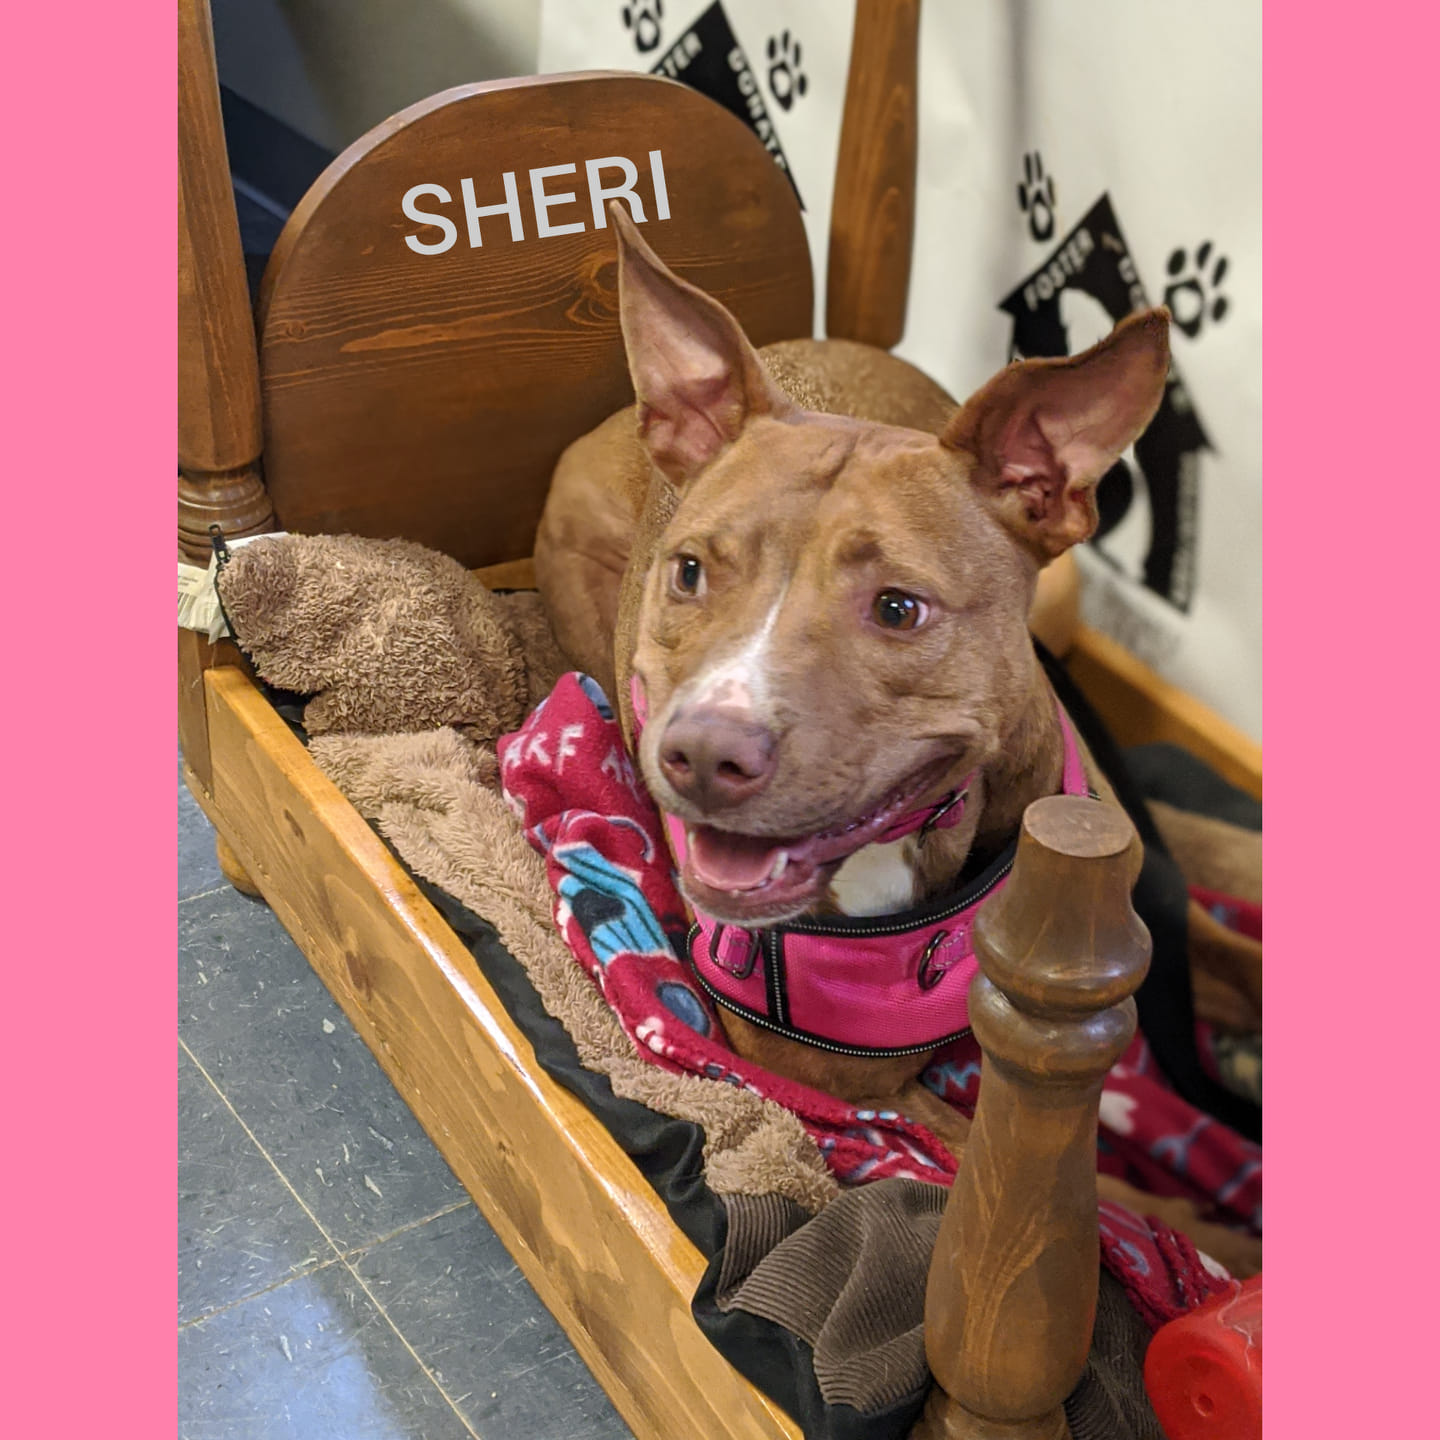 Check out all the great pets up for adoption